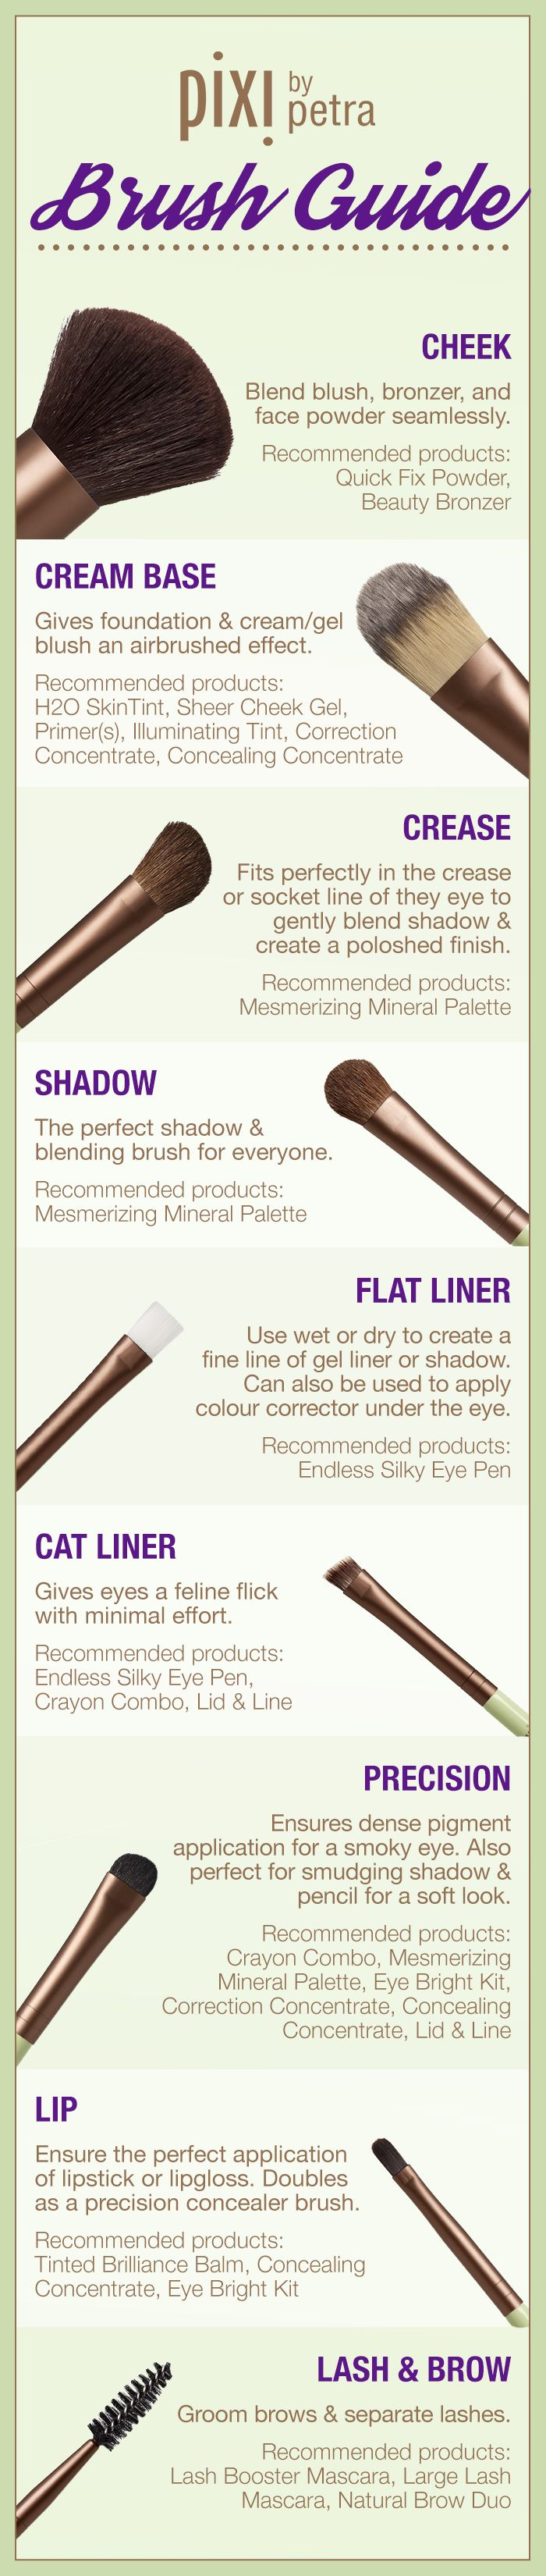 Pixi by Petra makeup brush guide